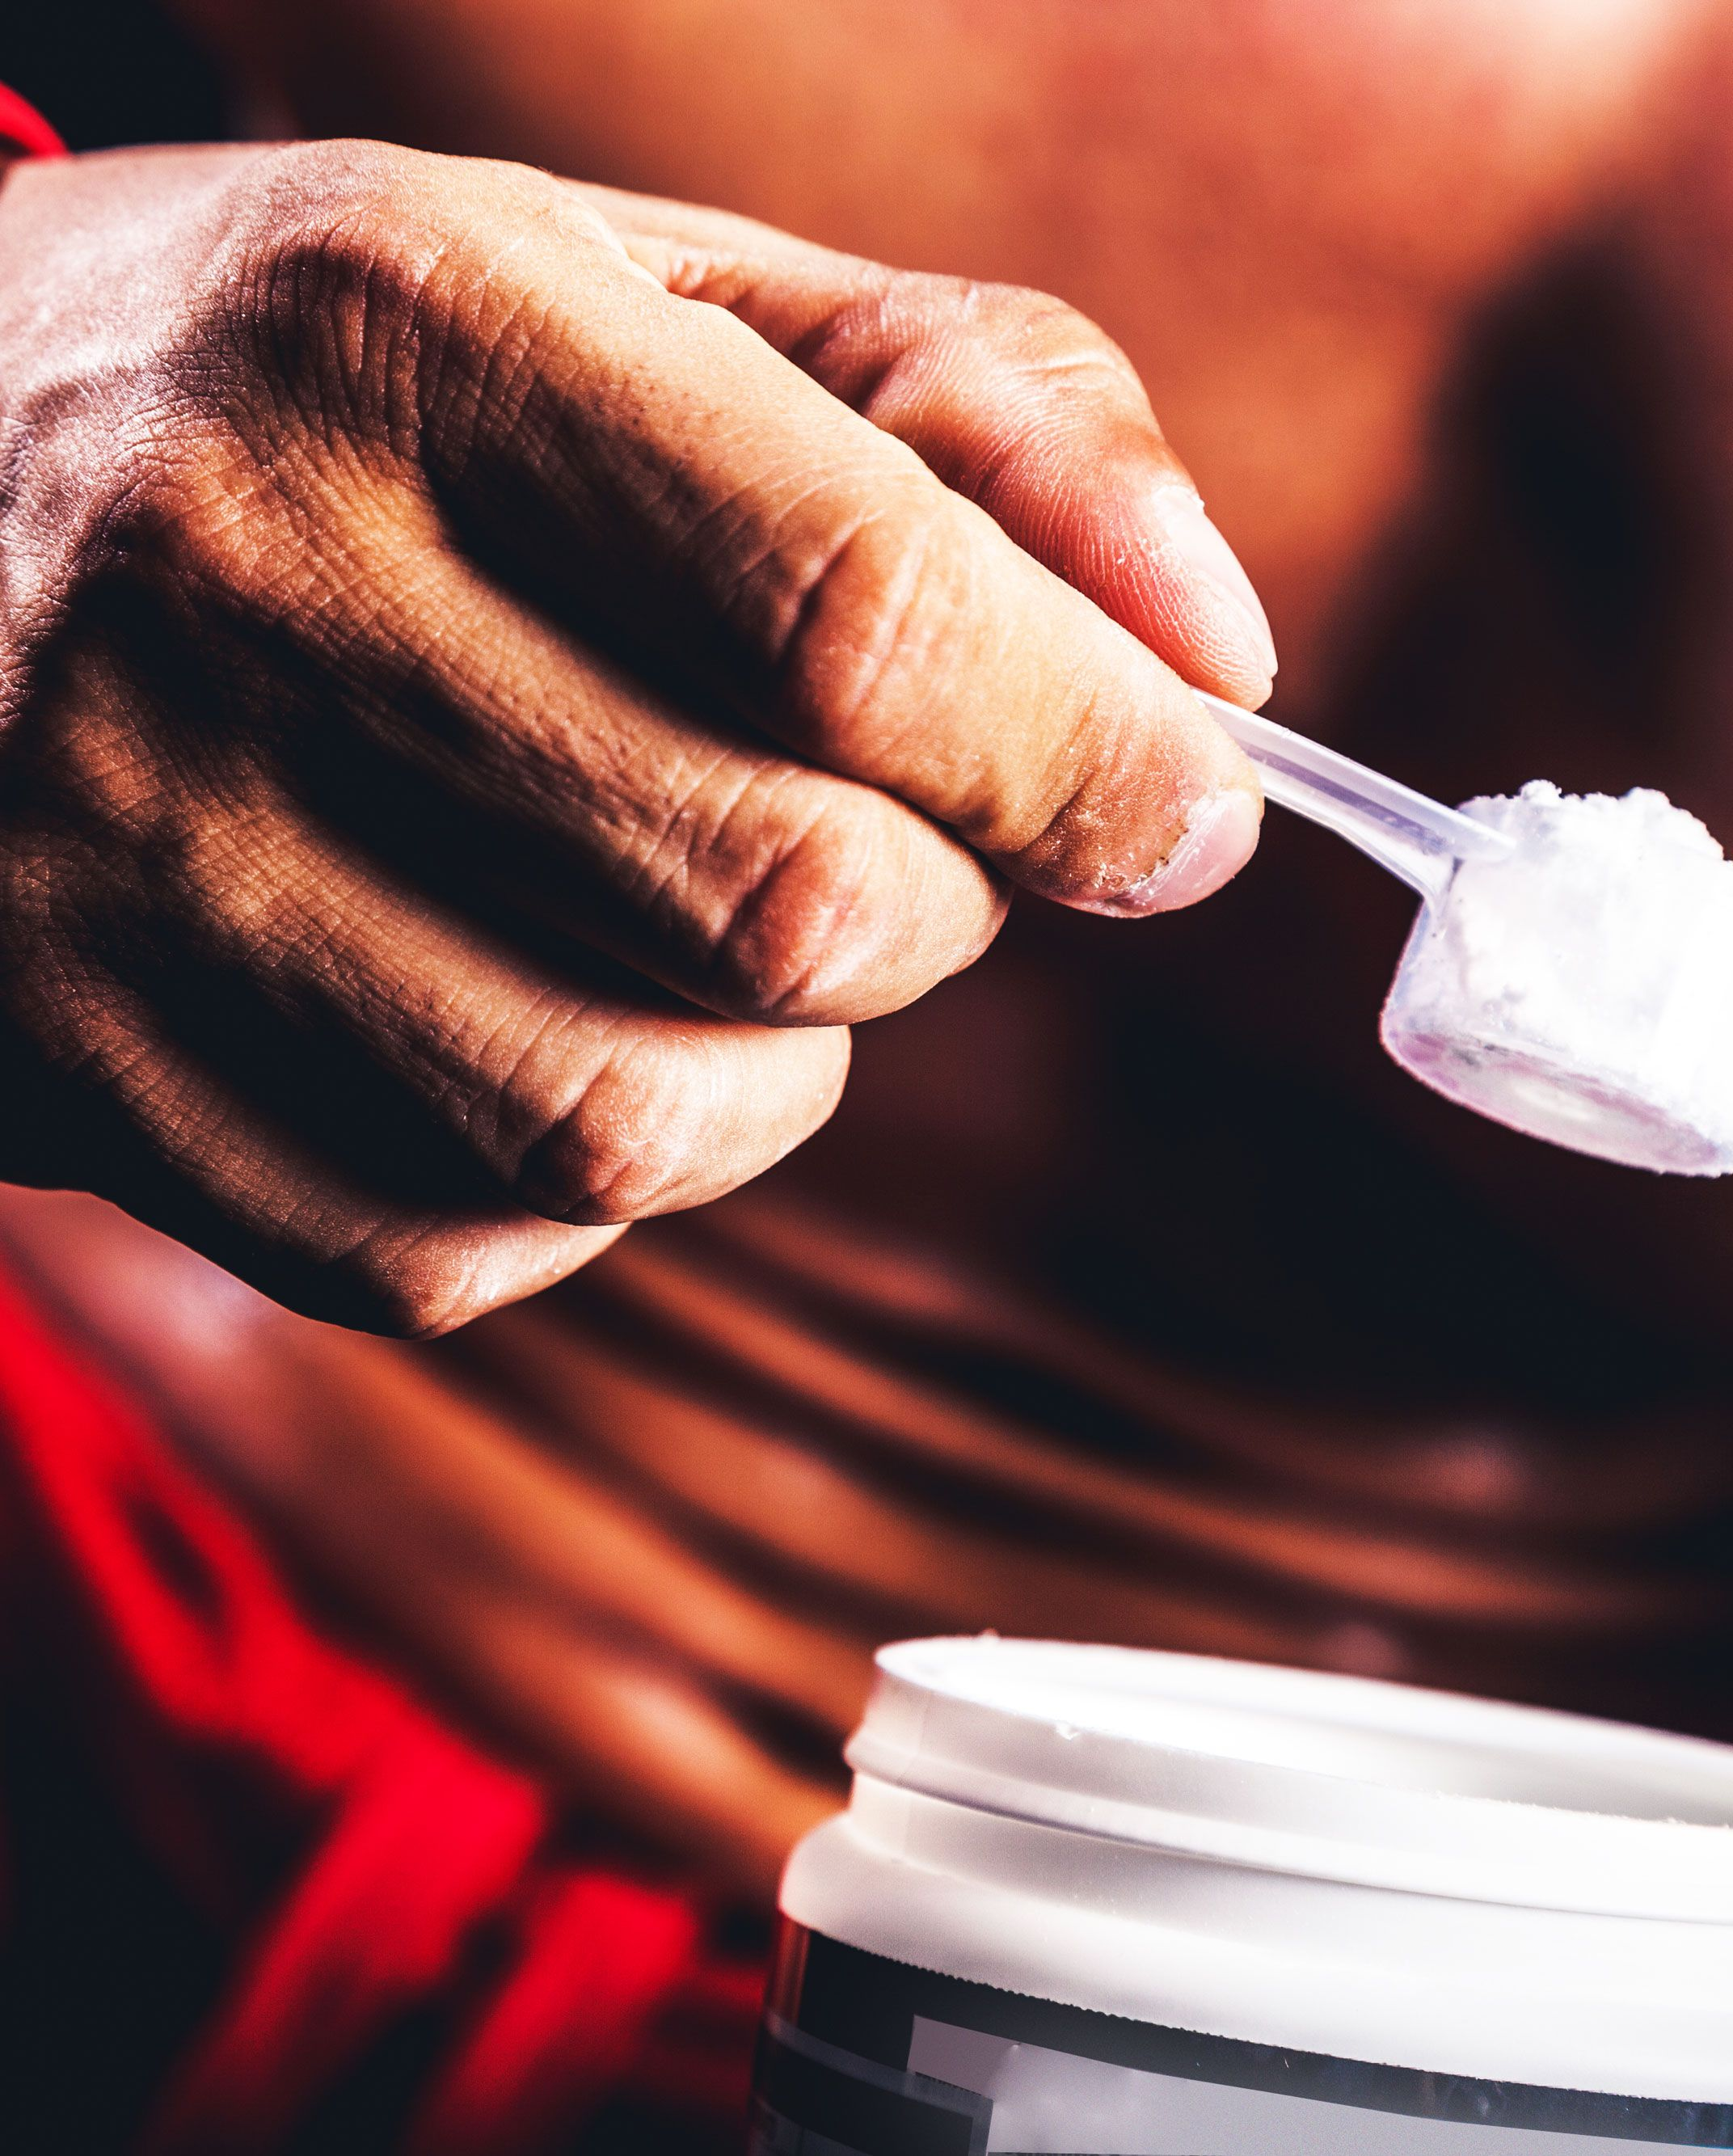 Bodybuilding Supplements May Cause Liver Damage, Says Study